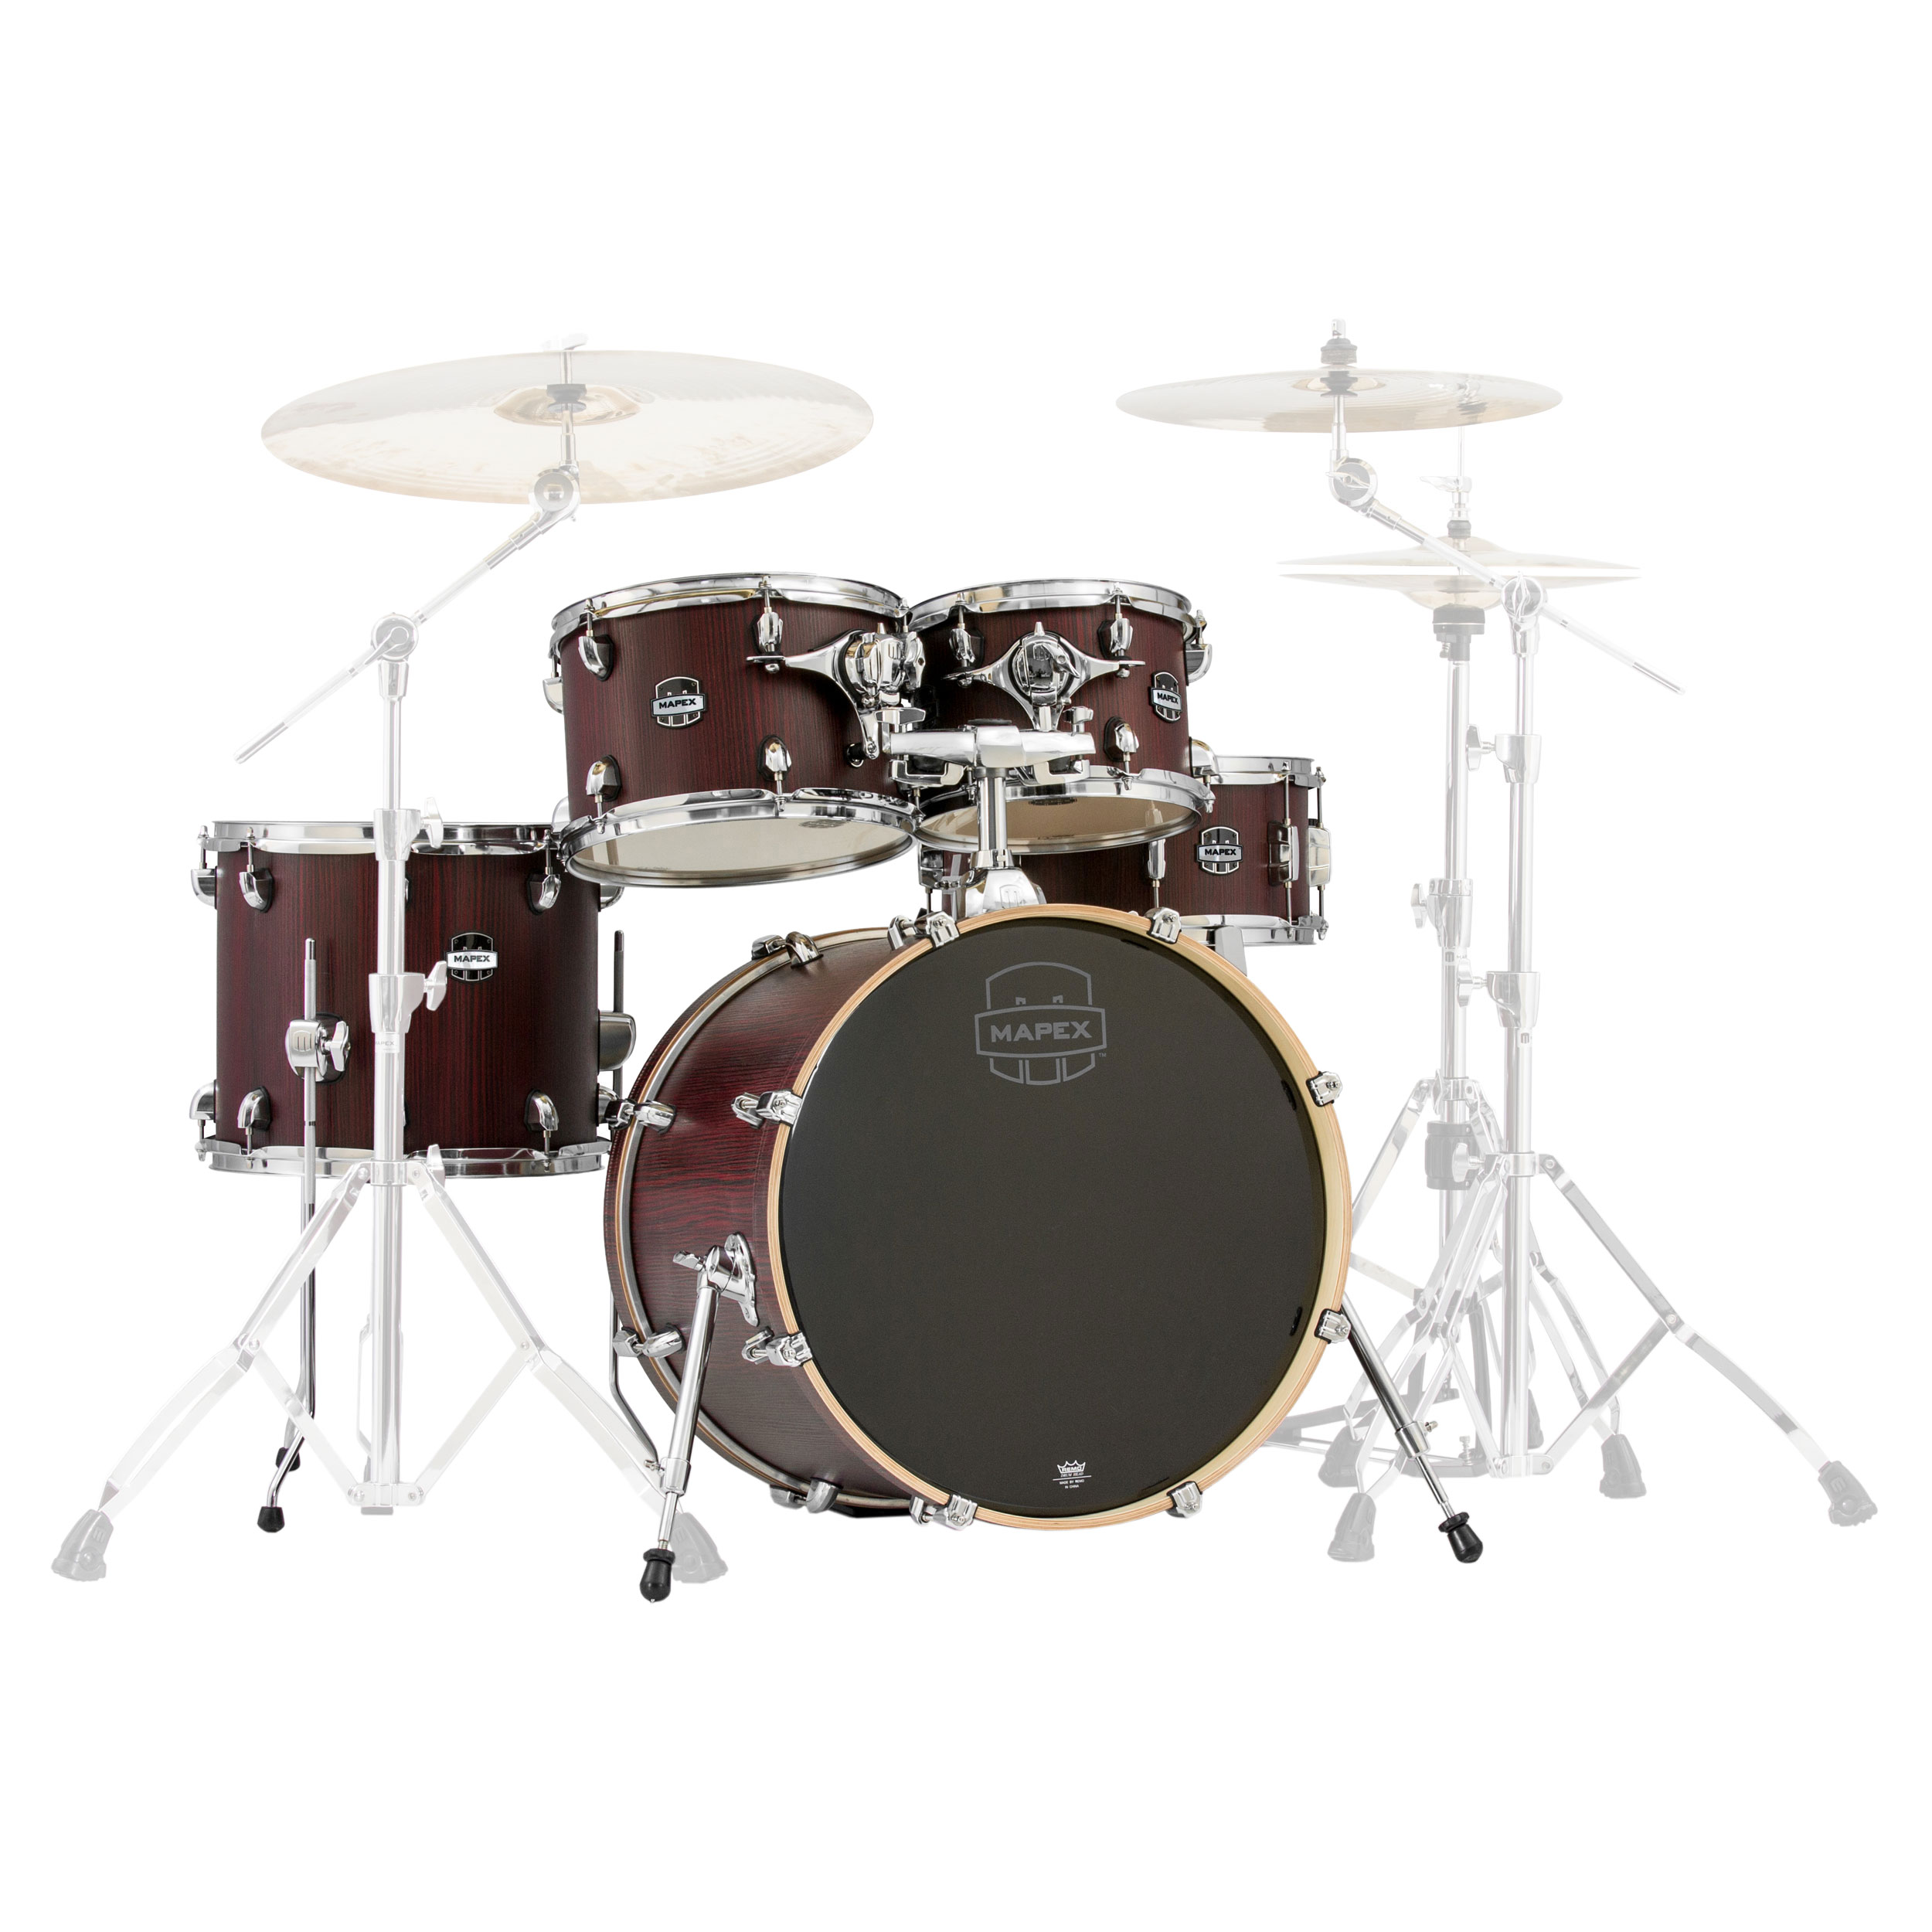 "Mapex Mars 5-Piece Fusion Drum Set Shell Pack (20"" Bass, 10/12/14"" Toms, 14"" Snare)"